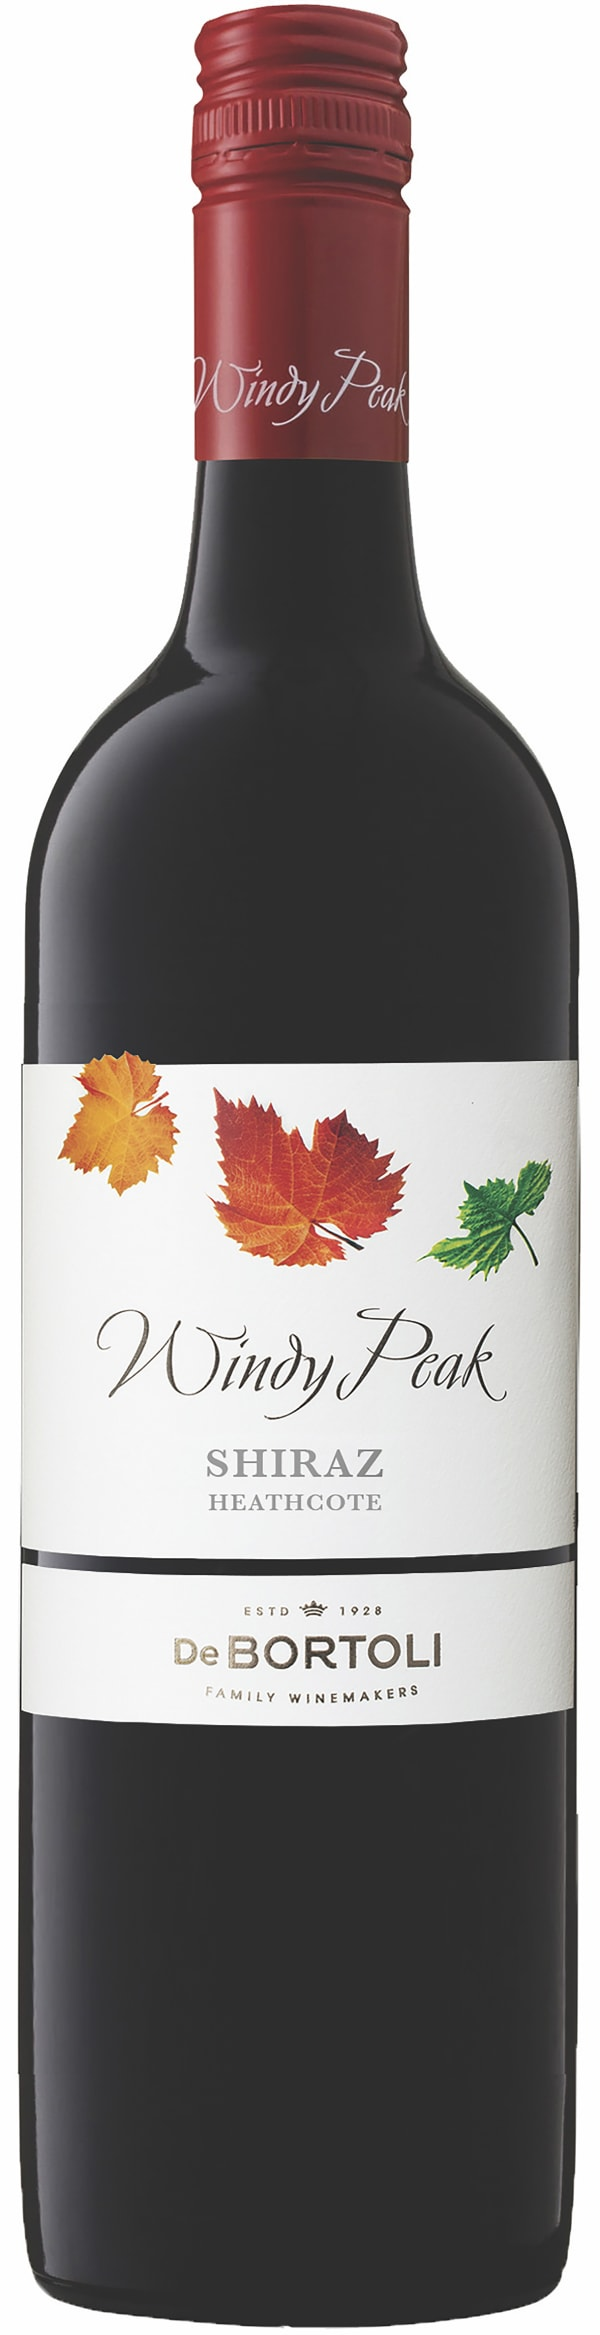 Windy Peak Heathcote Shiraz 2016